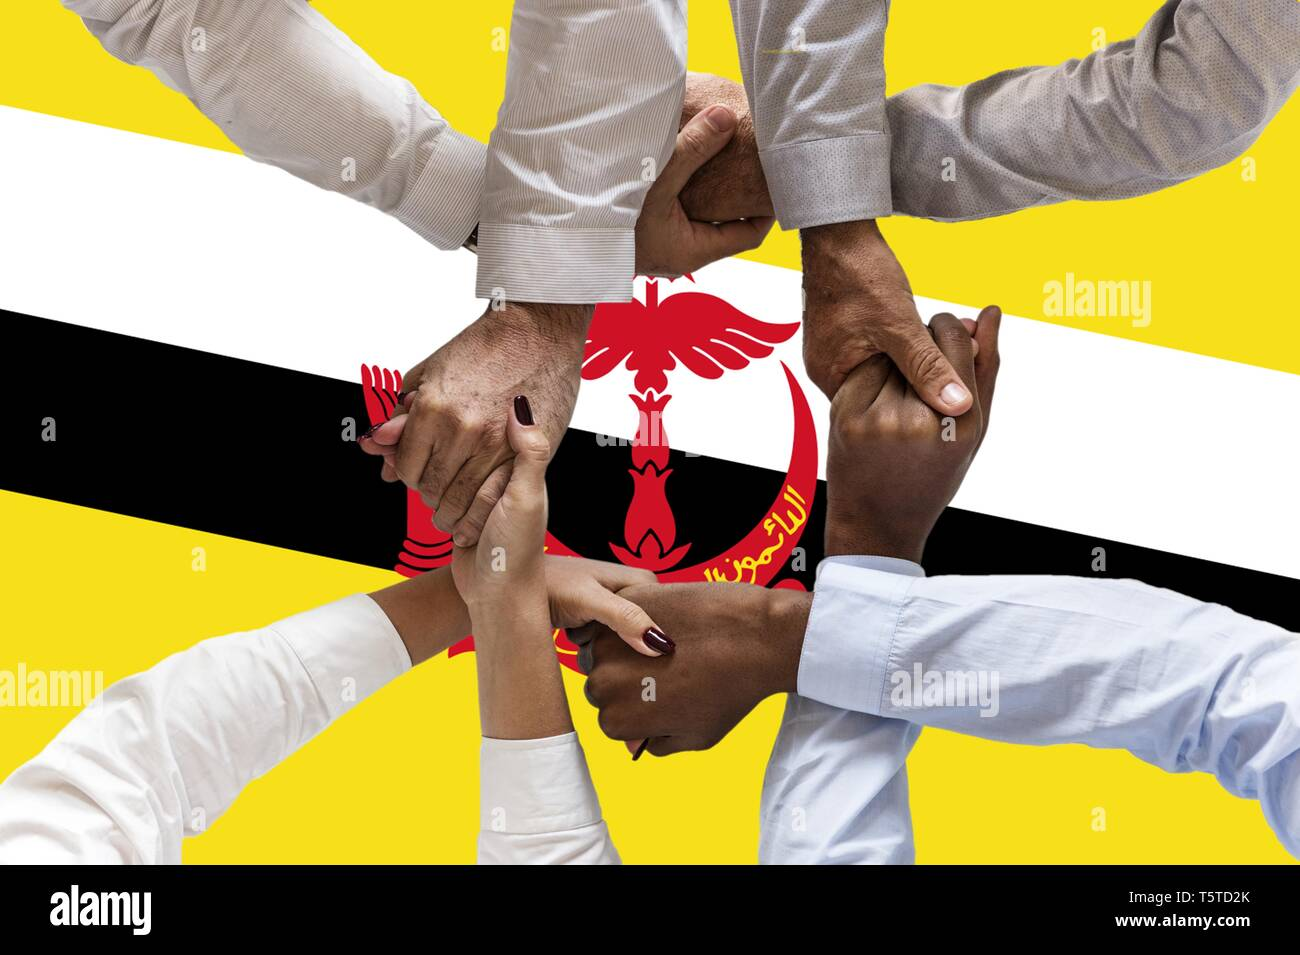 Flag of Brunei, intergration of a multicultural group of young people. - Stock Image